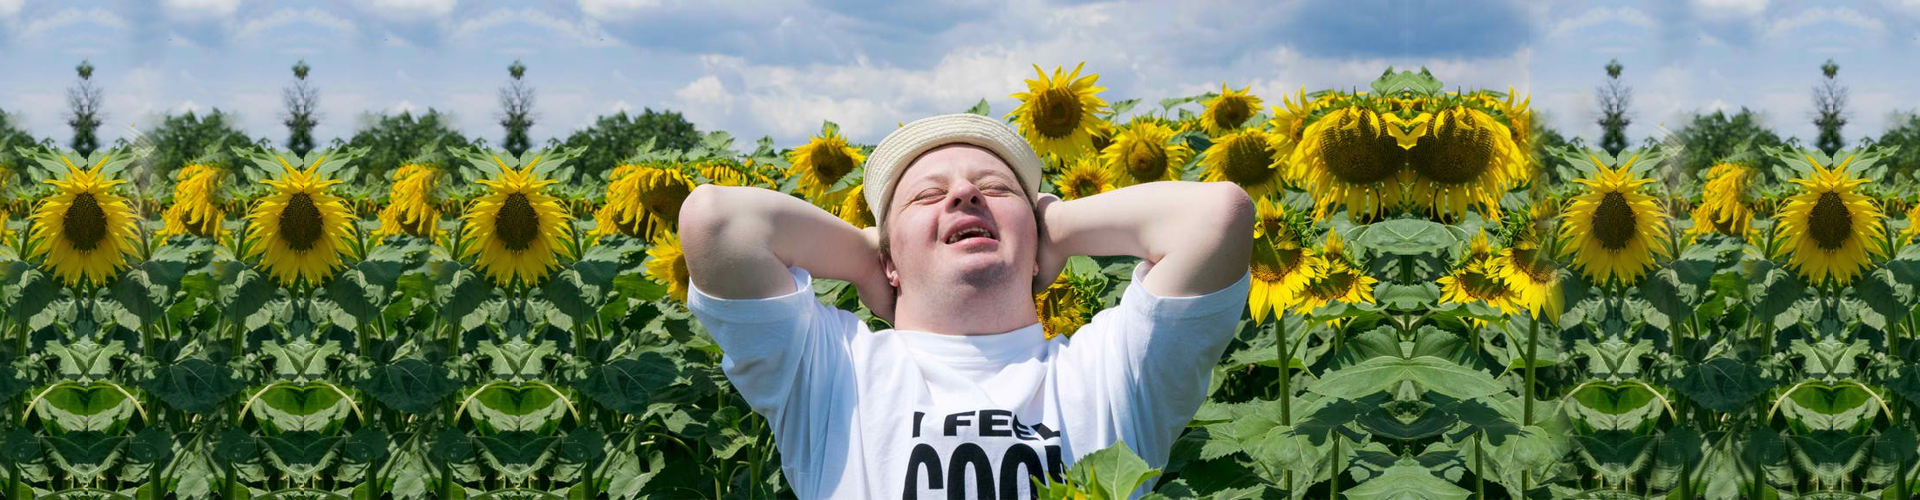 Happy young man with down syndrome relaxing in the sunflower field